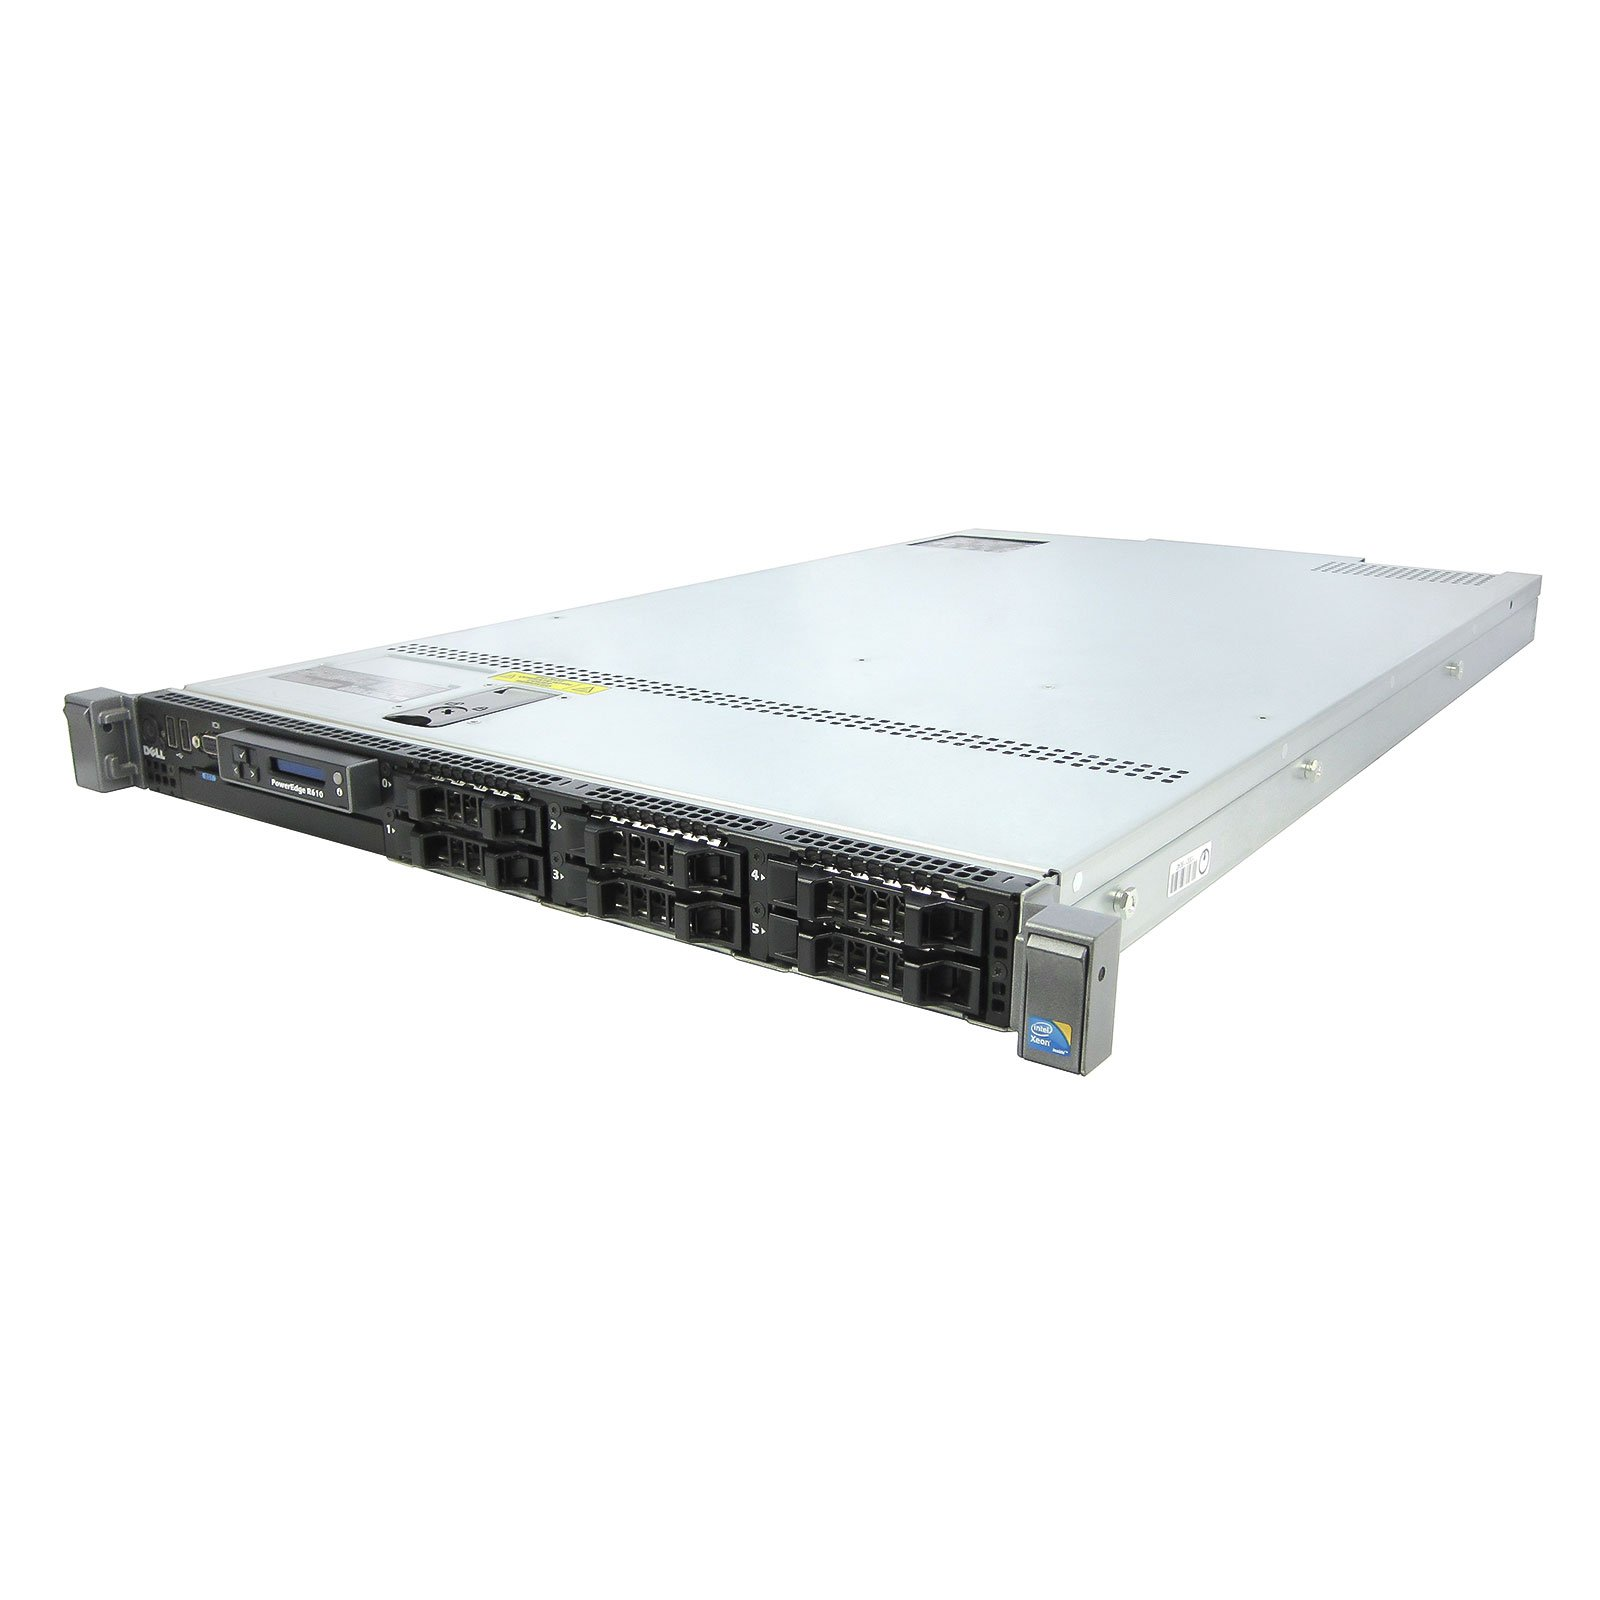 DELL PowerEdge R610 2 x 2.93Ghz X5570 Quad Core 48GB 2 x 73GB 10K SAS Bezel and Rails (Certified Refurbished)